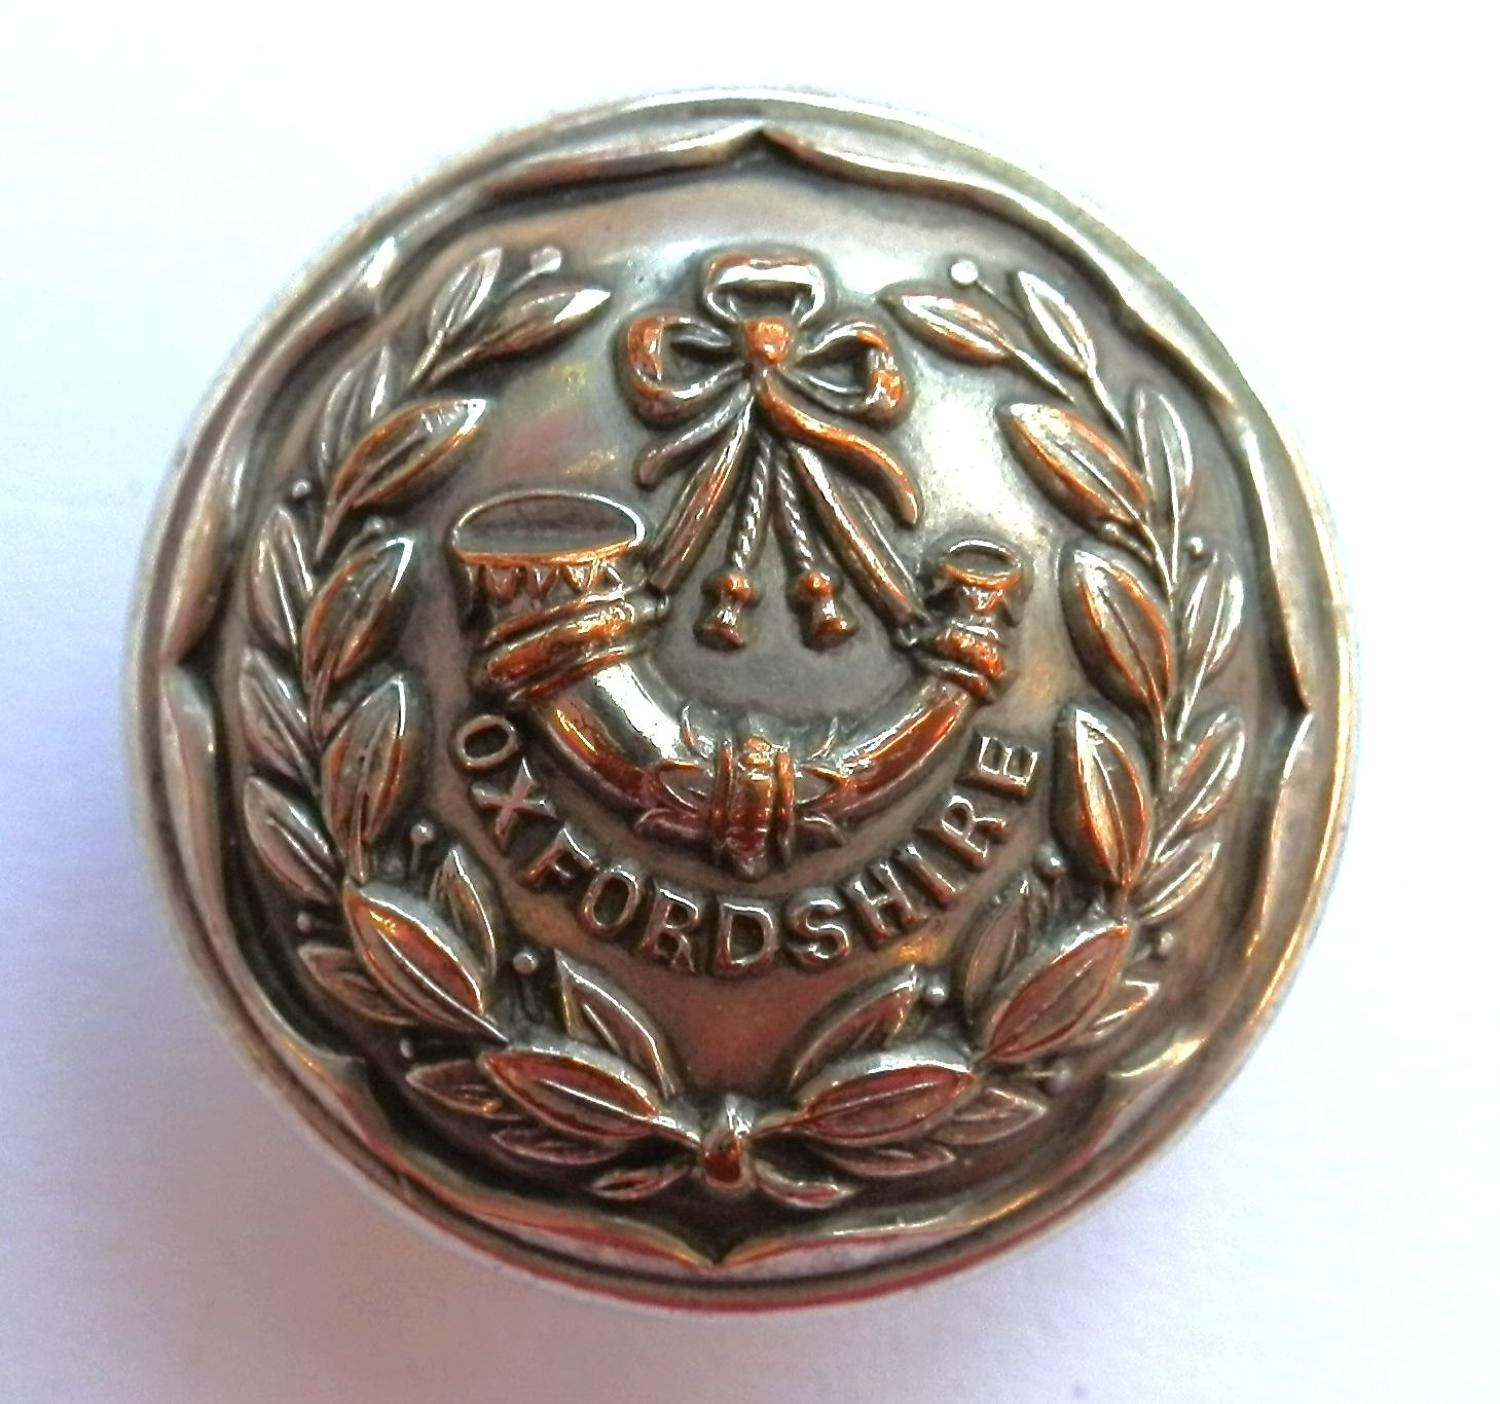 Oxfordshire Light Infantry Button